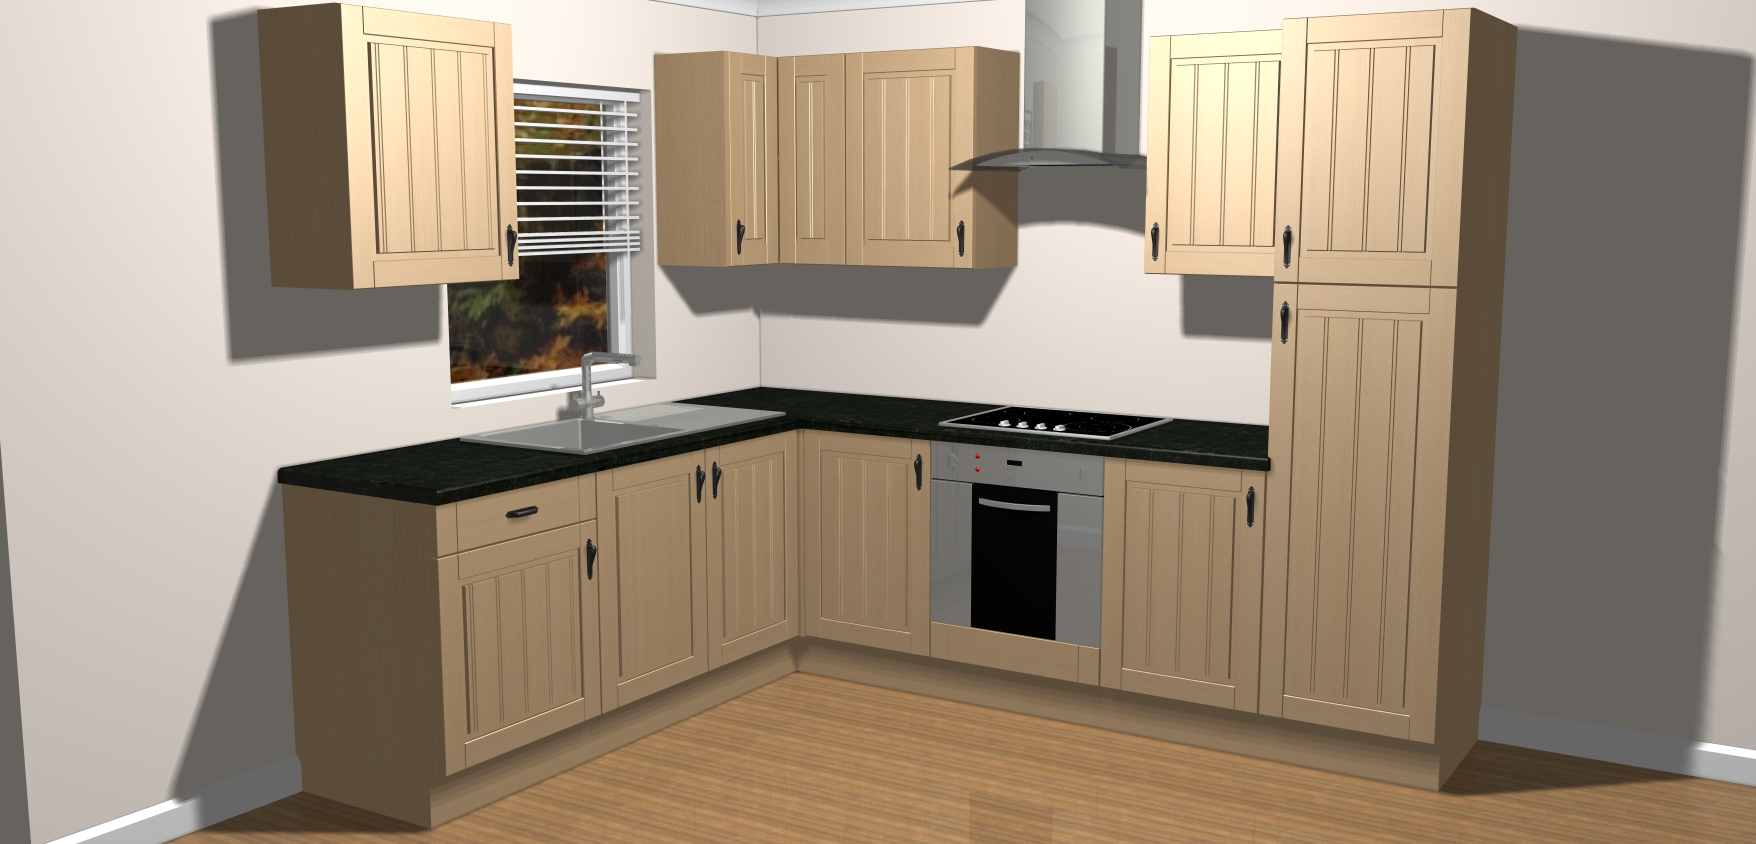 New avondale ivory complete fitted kitchen units ebay for Latest kitchen units designs